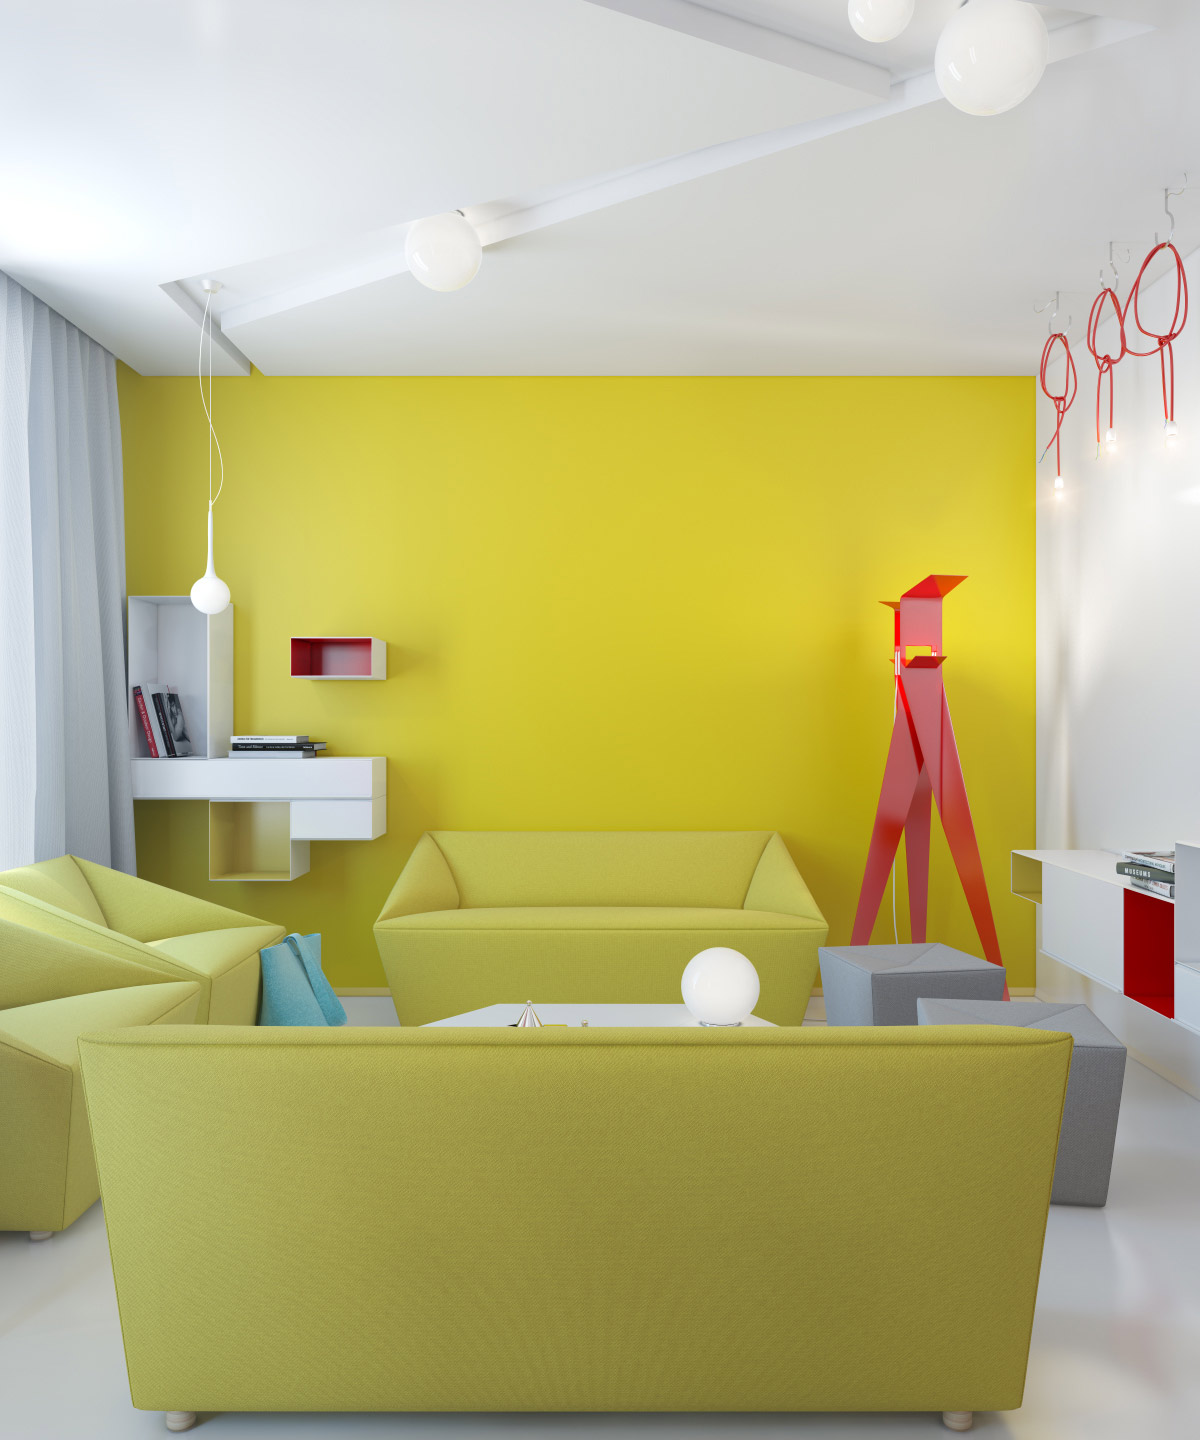 Colorful Room Decor Paint: Small Apartment Zinging With Color